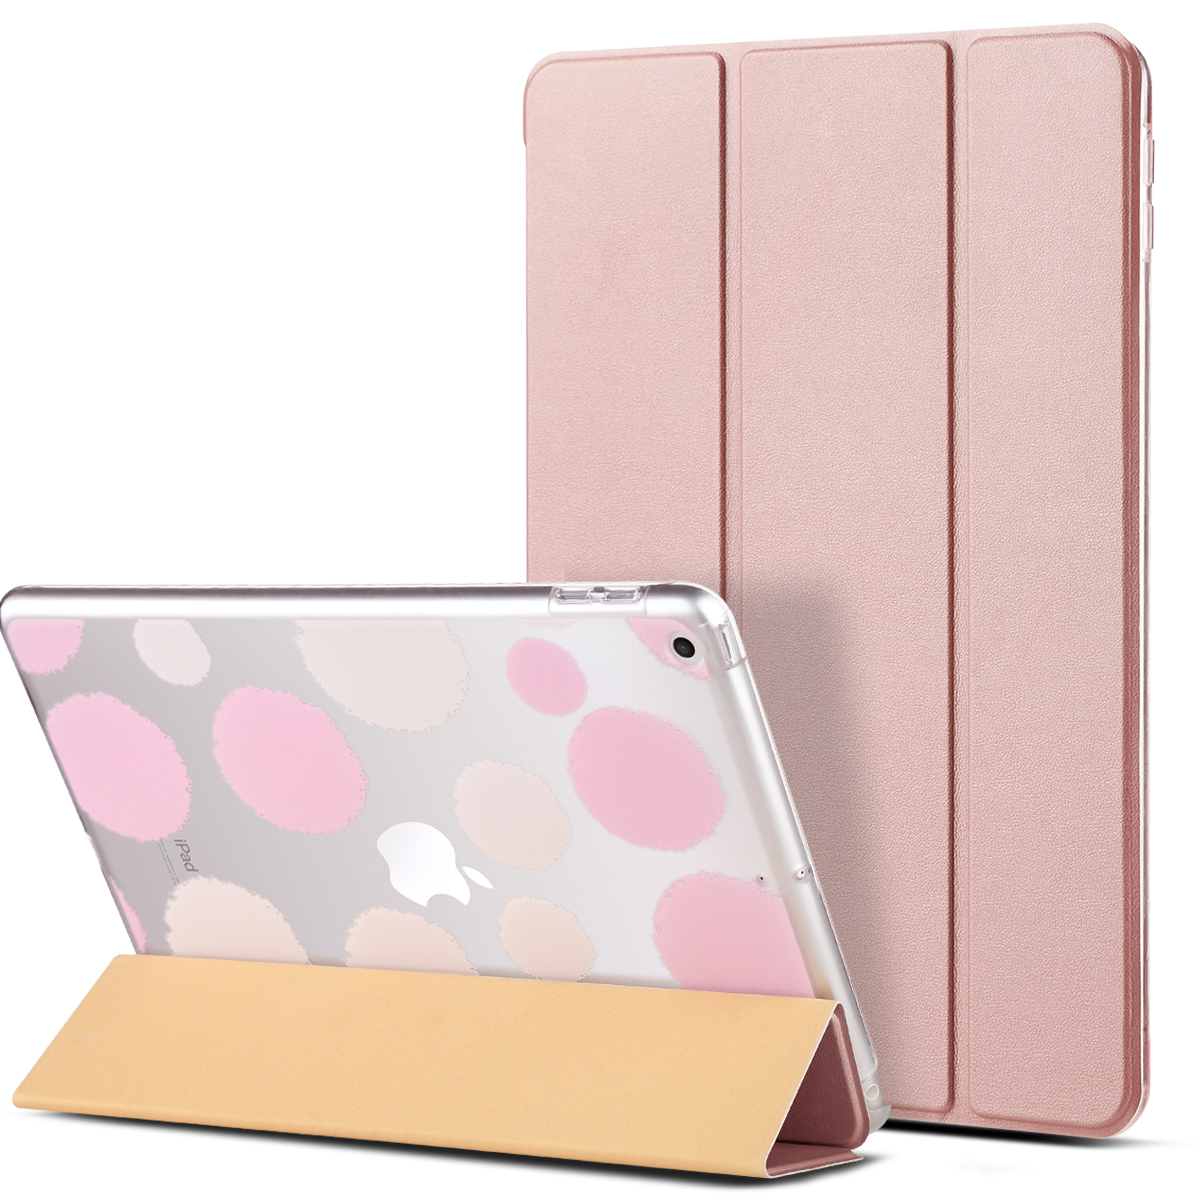 "ULAK New iPad 9.7 Inch 2017/2018 Case - Ultra Slim Lightweight Smart Shell Cover with Auto Sleep / Wake Feature  for Apple iPad 9.7"" 2017 and 2018 Release Tablet"